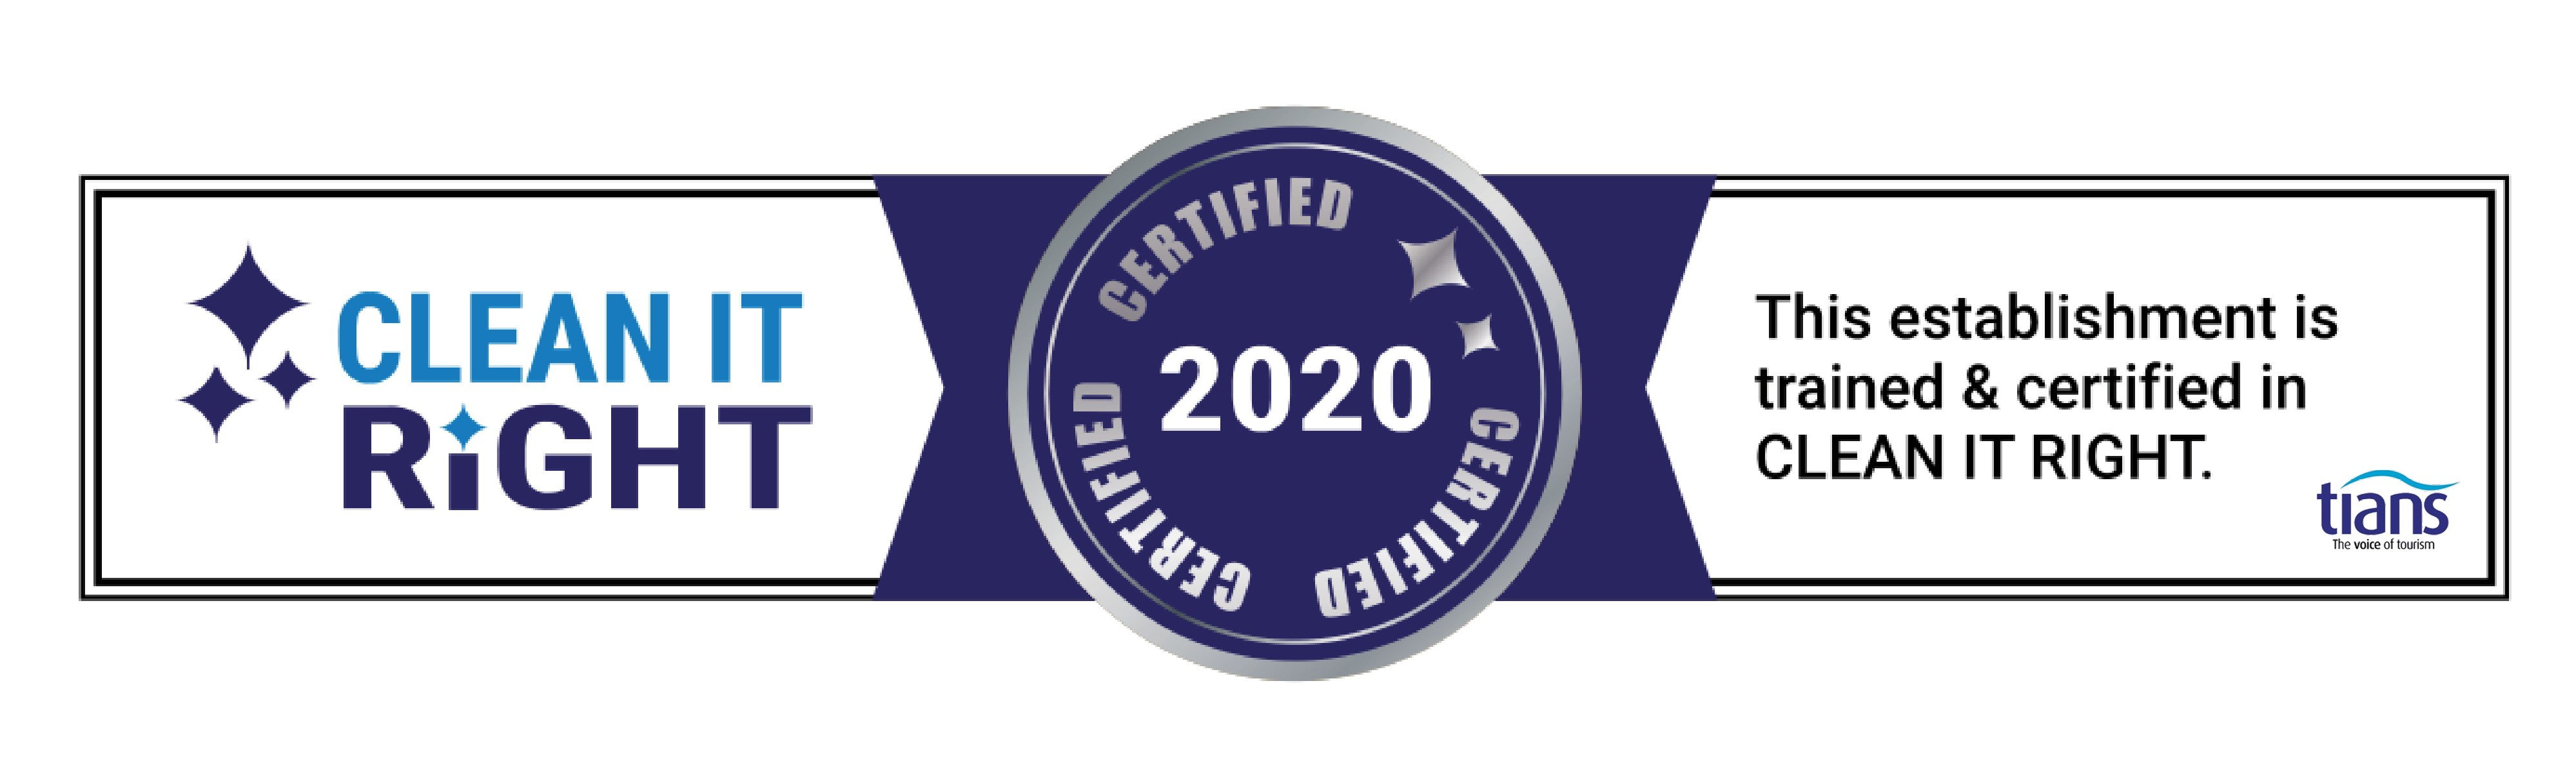 cir 2020 decal